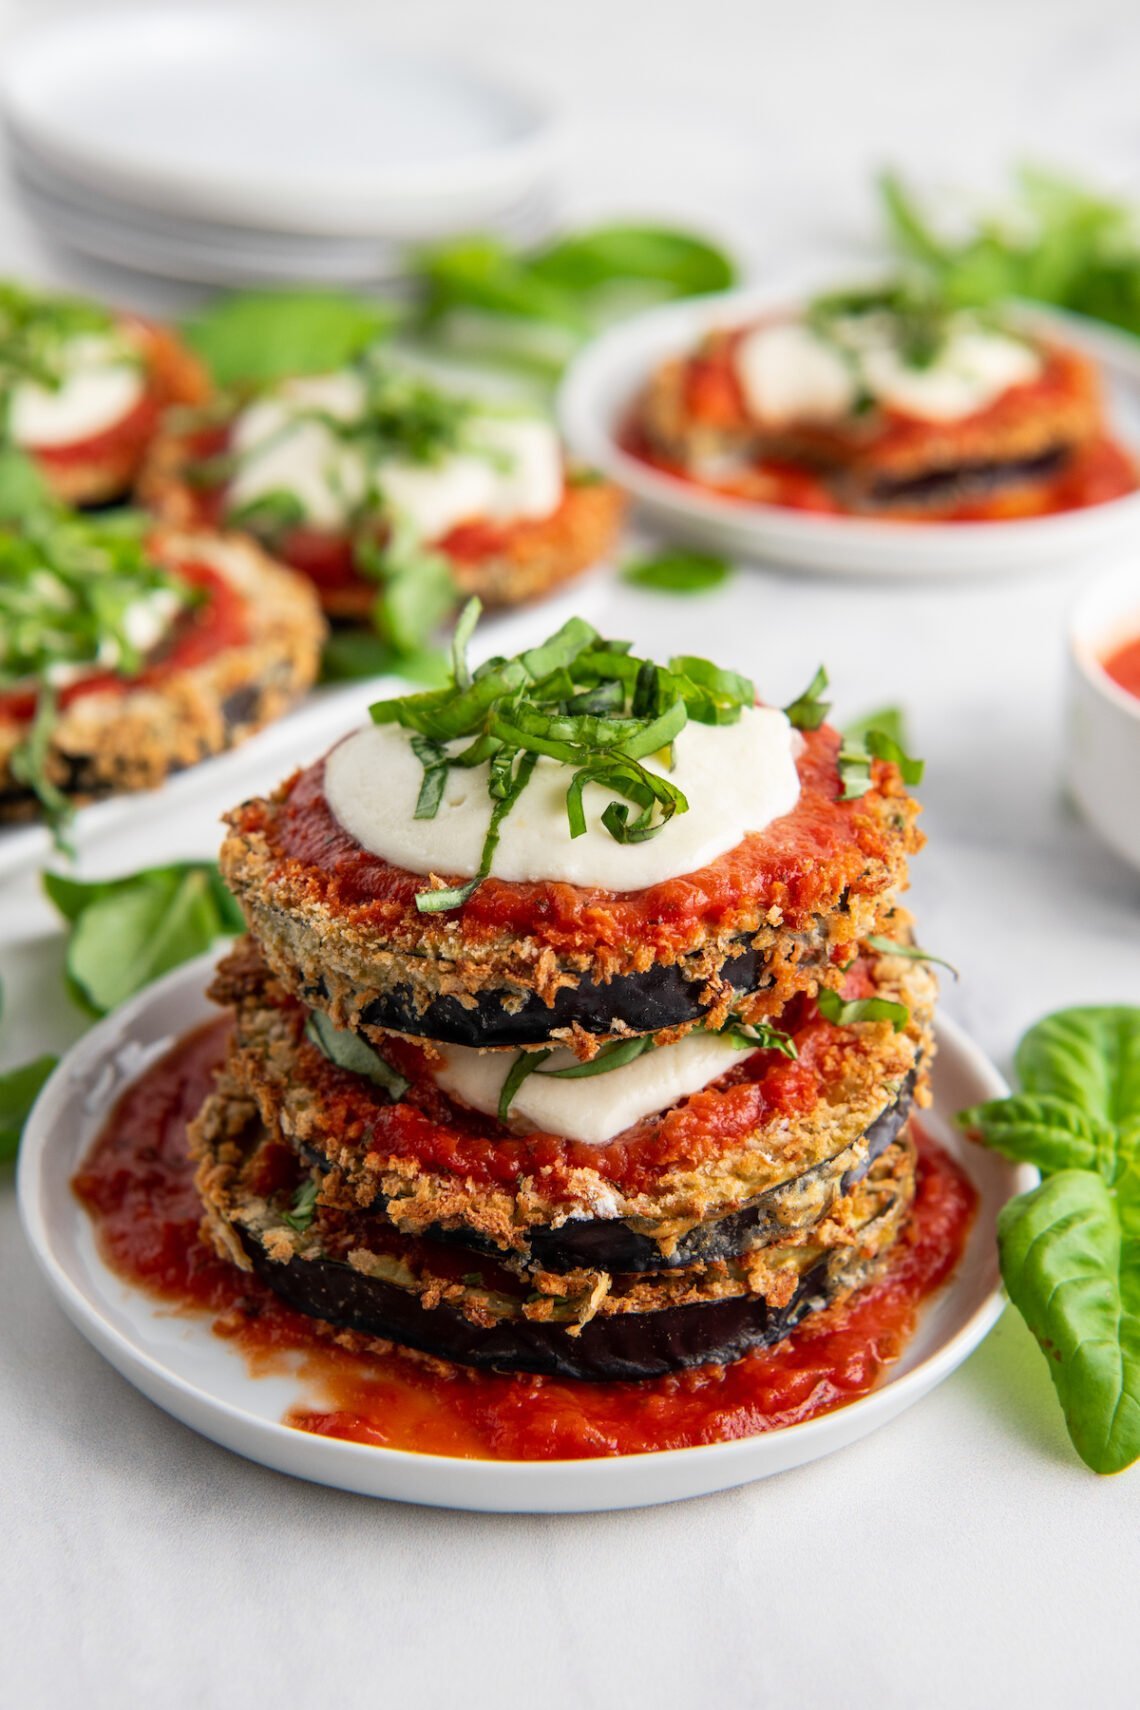 Eggplant Parmesan topped with mozzarella, sauce and basil stacked on a plate